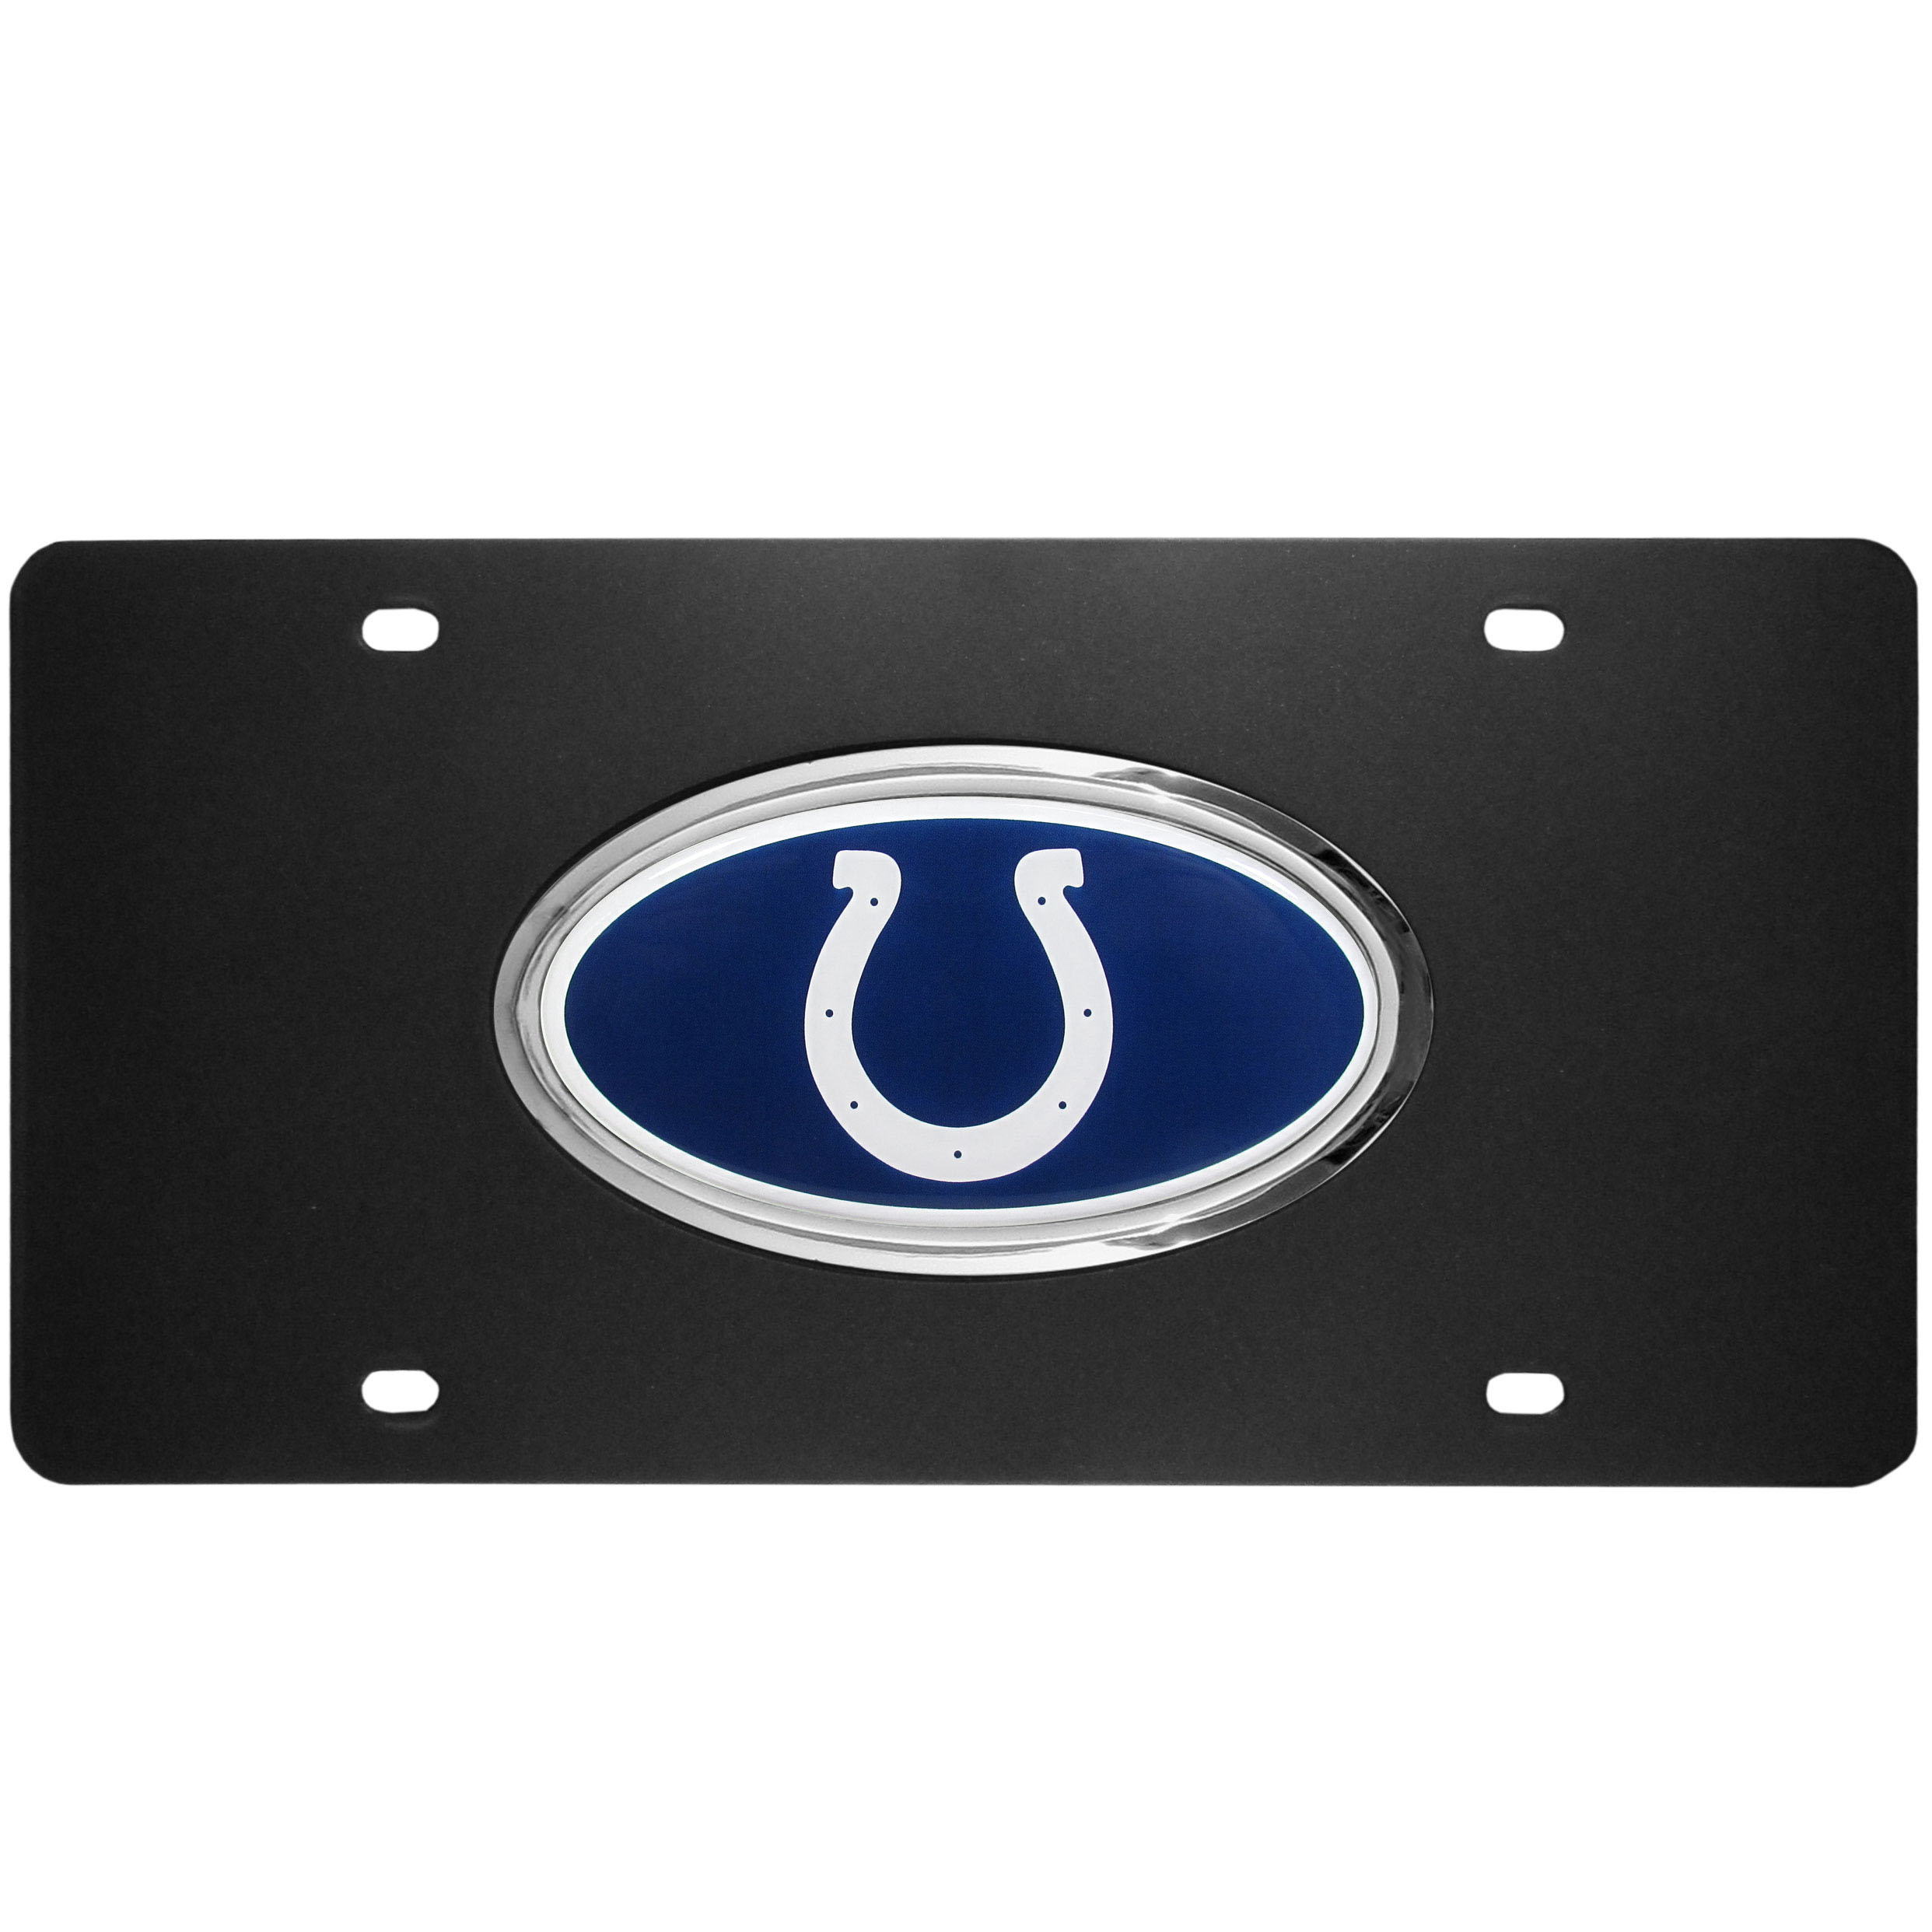 Indianapolis Colts Acrylic License Plate - Our Indianapolis Colts acrylic license plate is a step above the rest. It is made of thick, durable acrylic with a matte black finish and raised chrome saddle for the extra large team emblem.